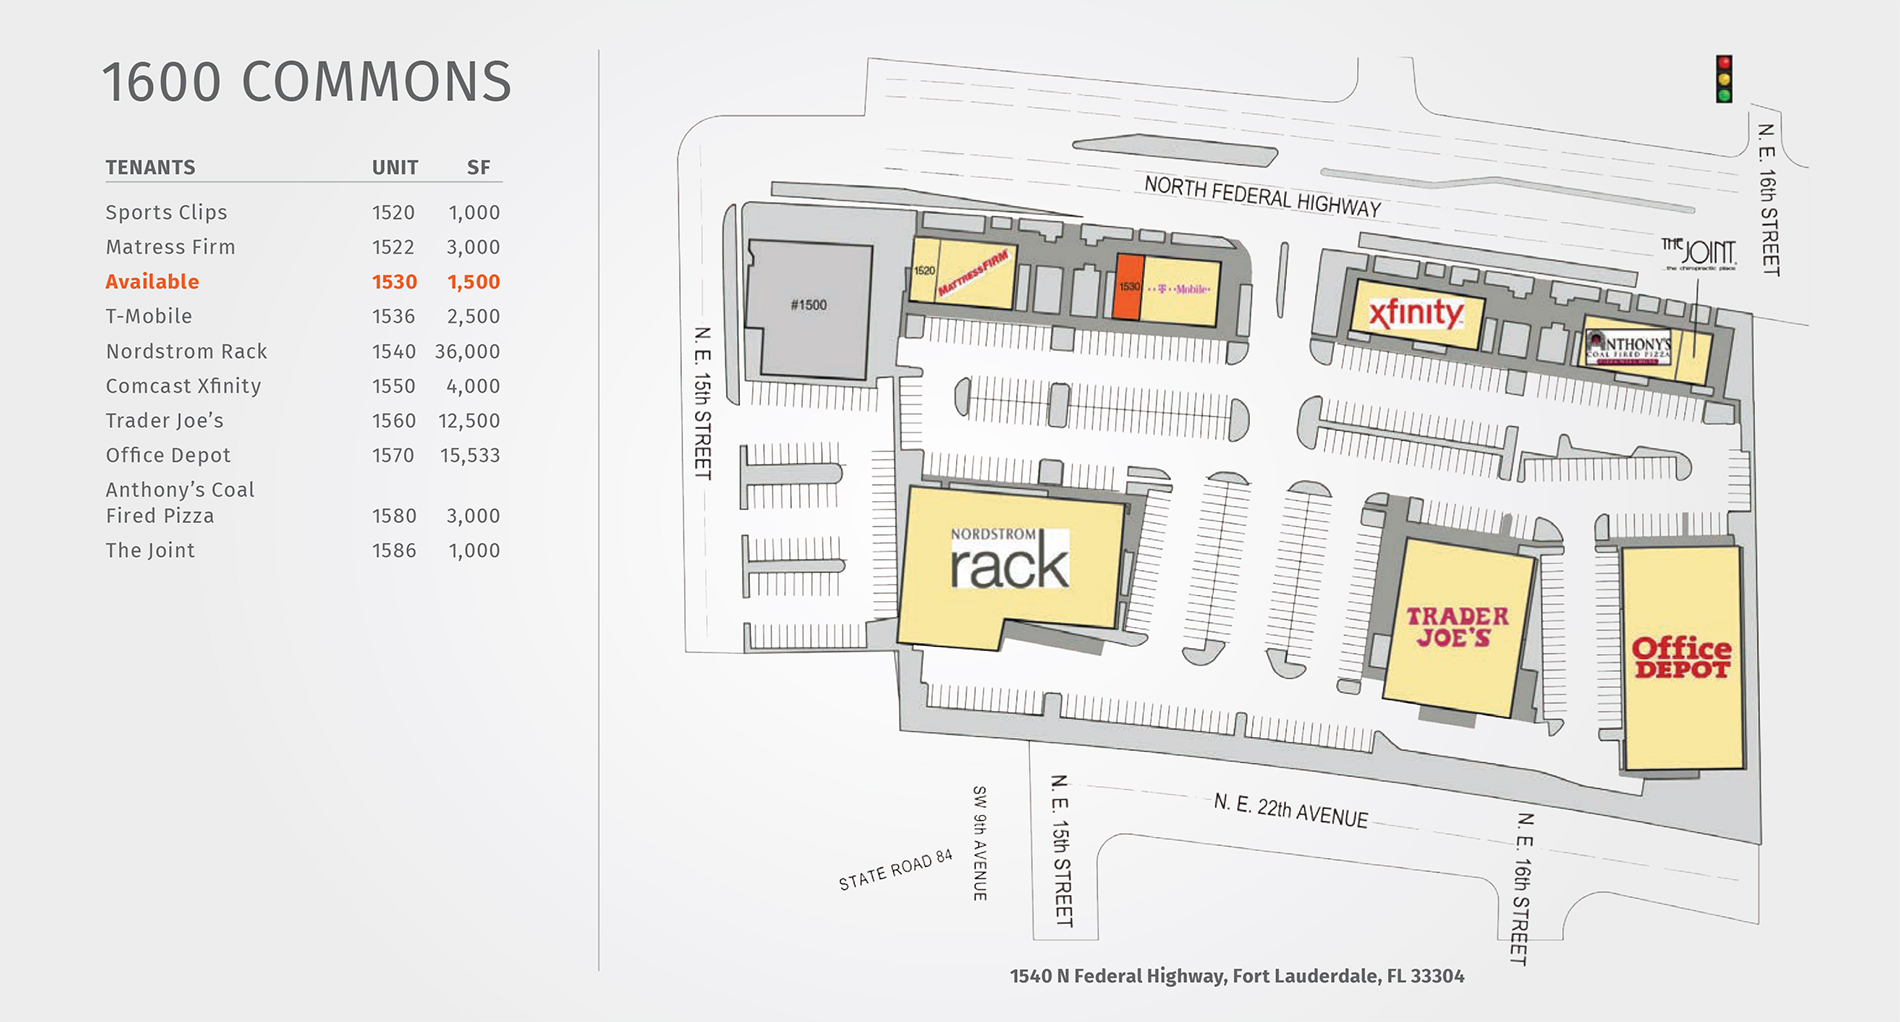 1600 Commons site map